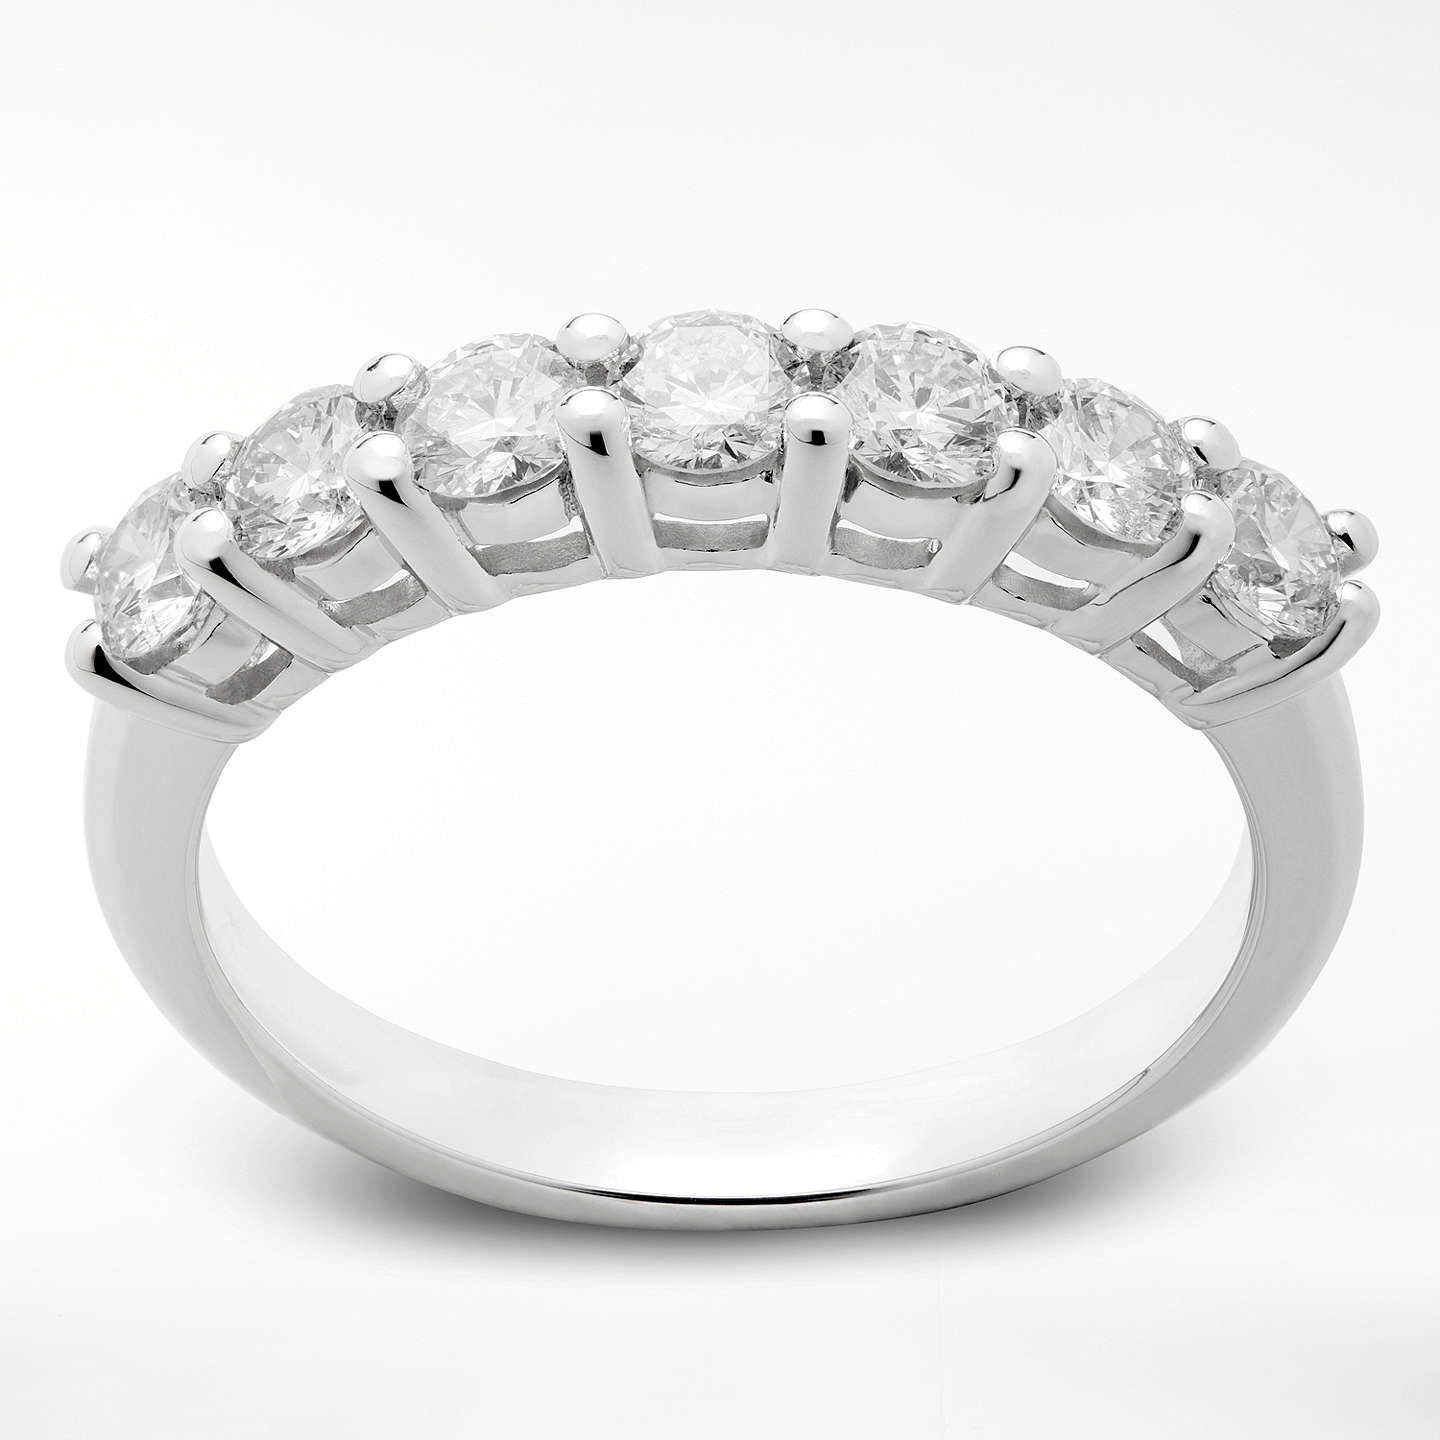 rings product diamond eternity ring find carat the dublin engagement jewellery